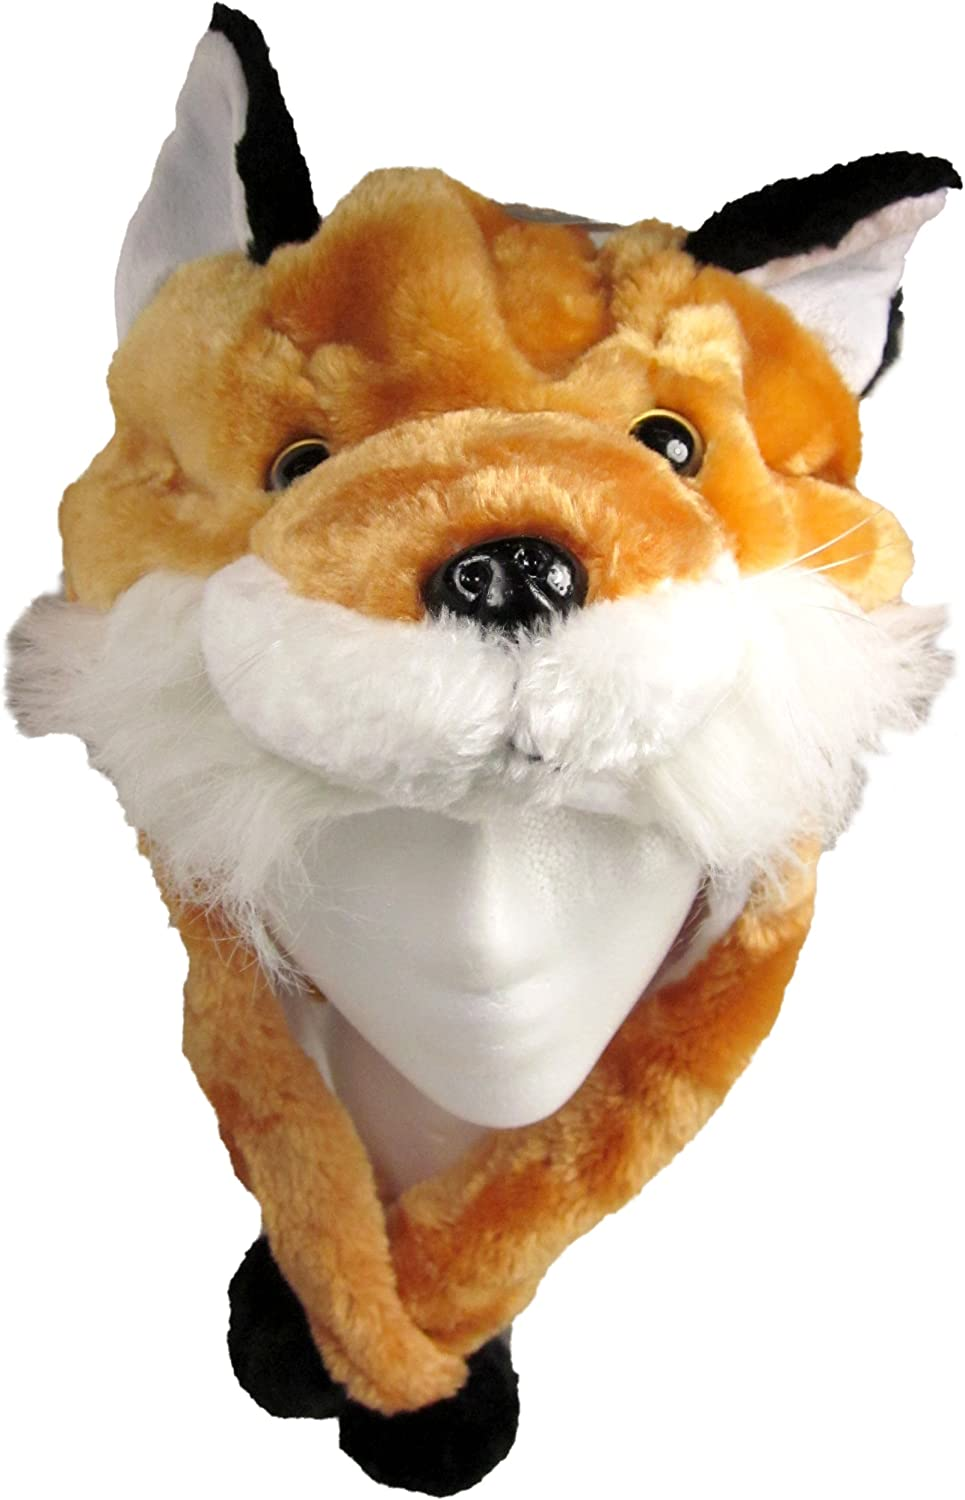 Critter Caps Plush Animal Hat with Ear Flaps That Button Under The Chin